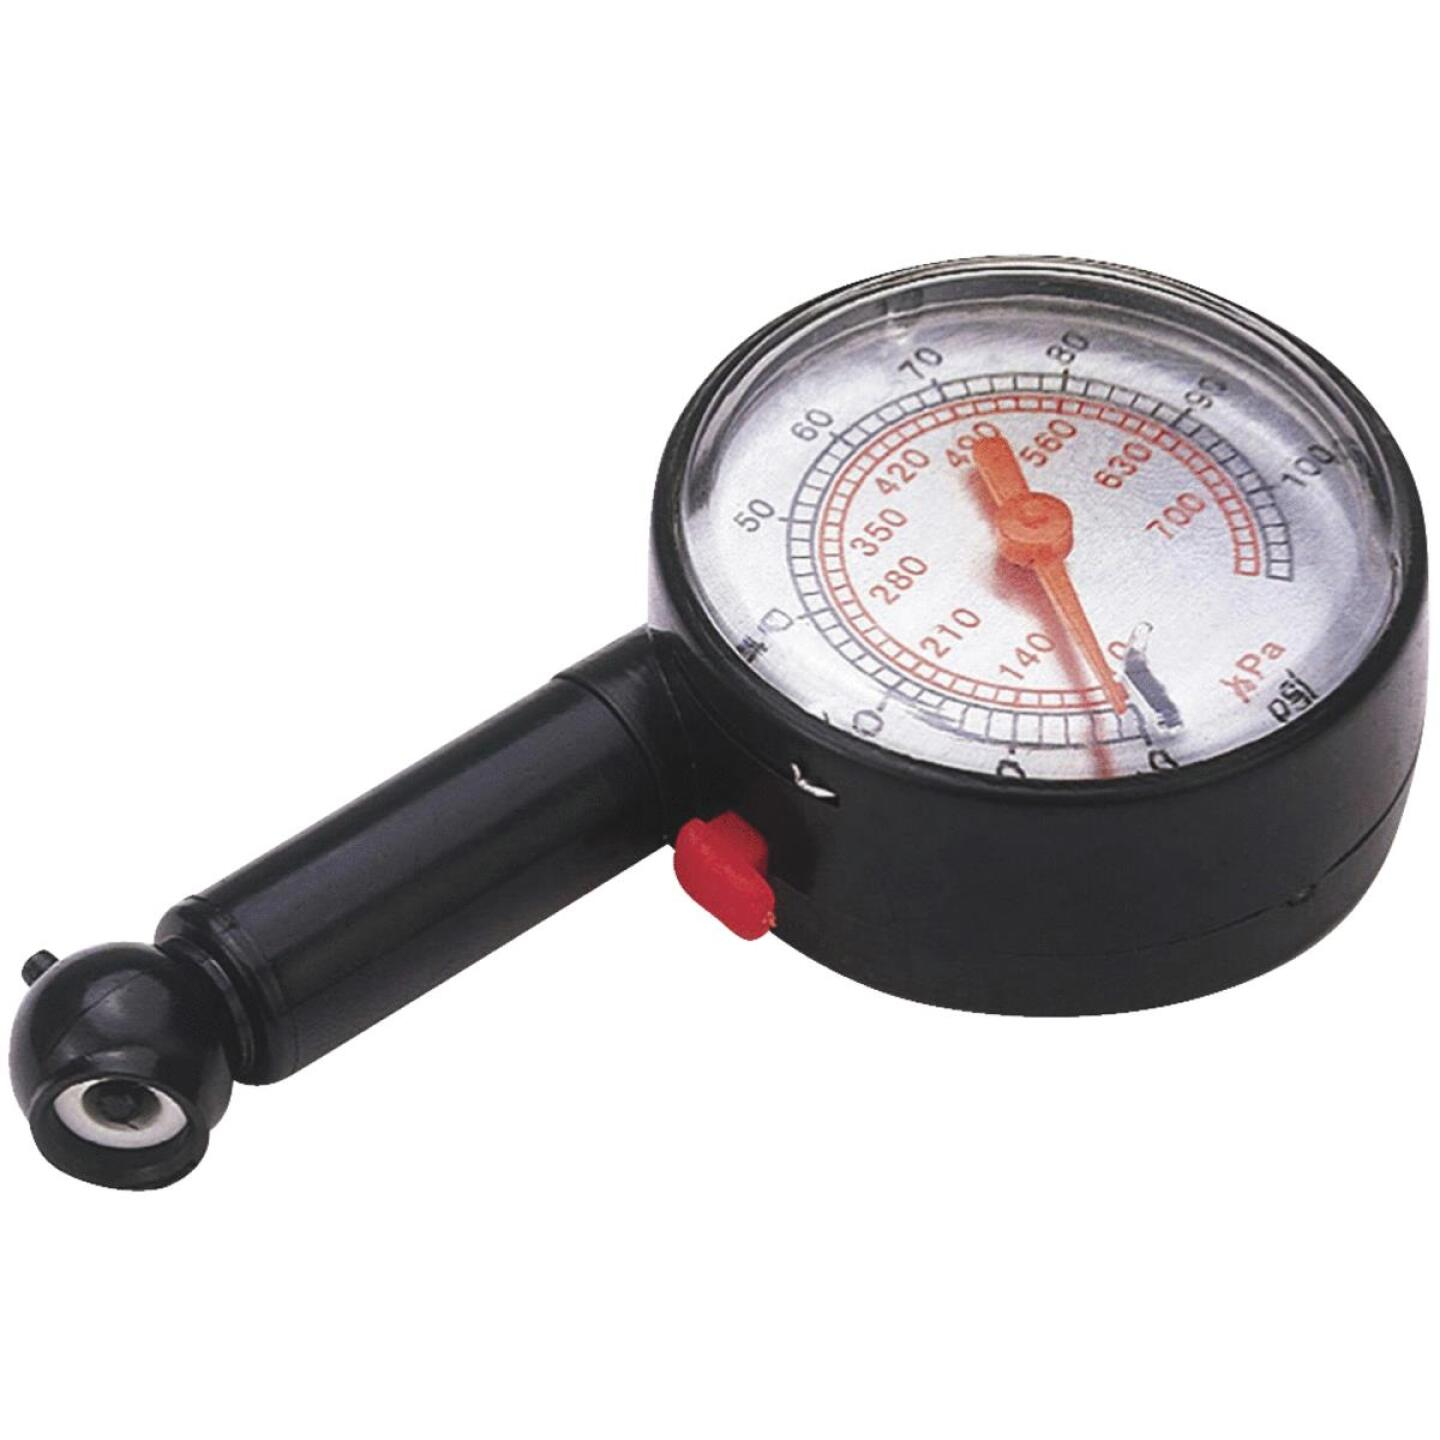 Custom Accessories 10-100 psi Tire Gauge Image 1